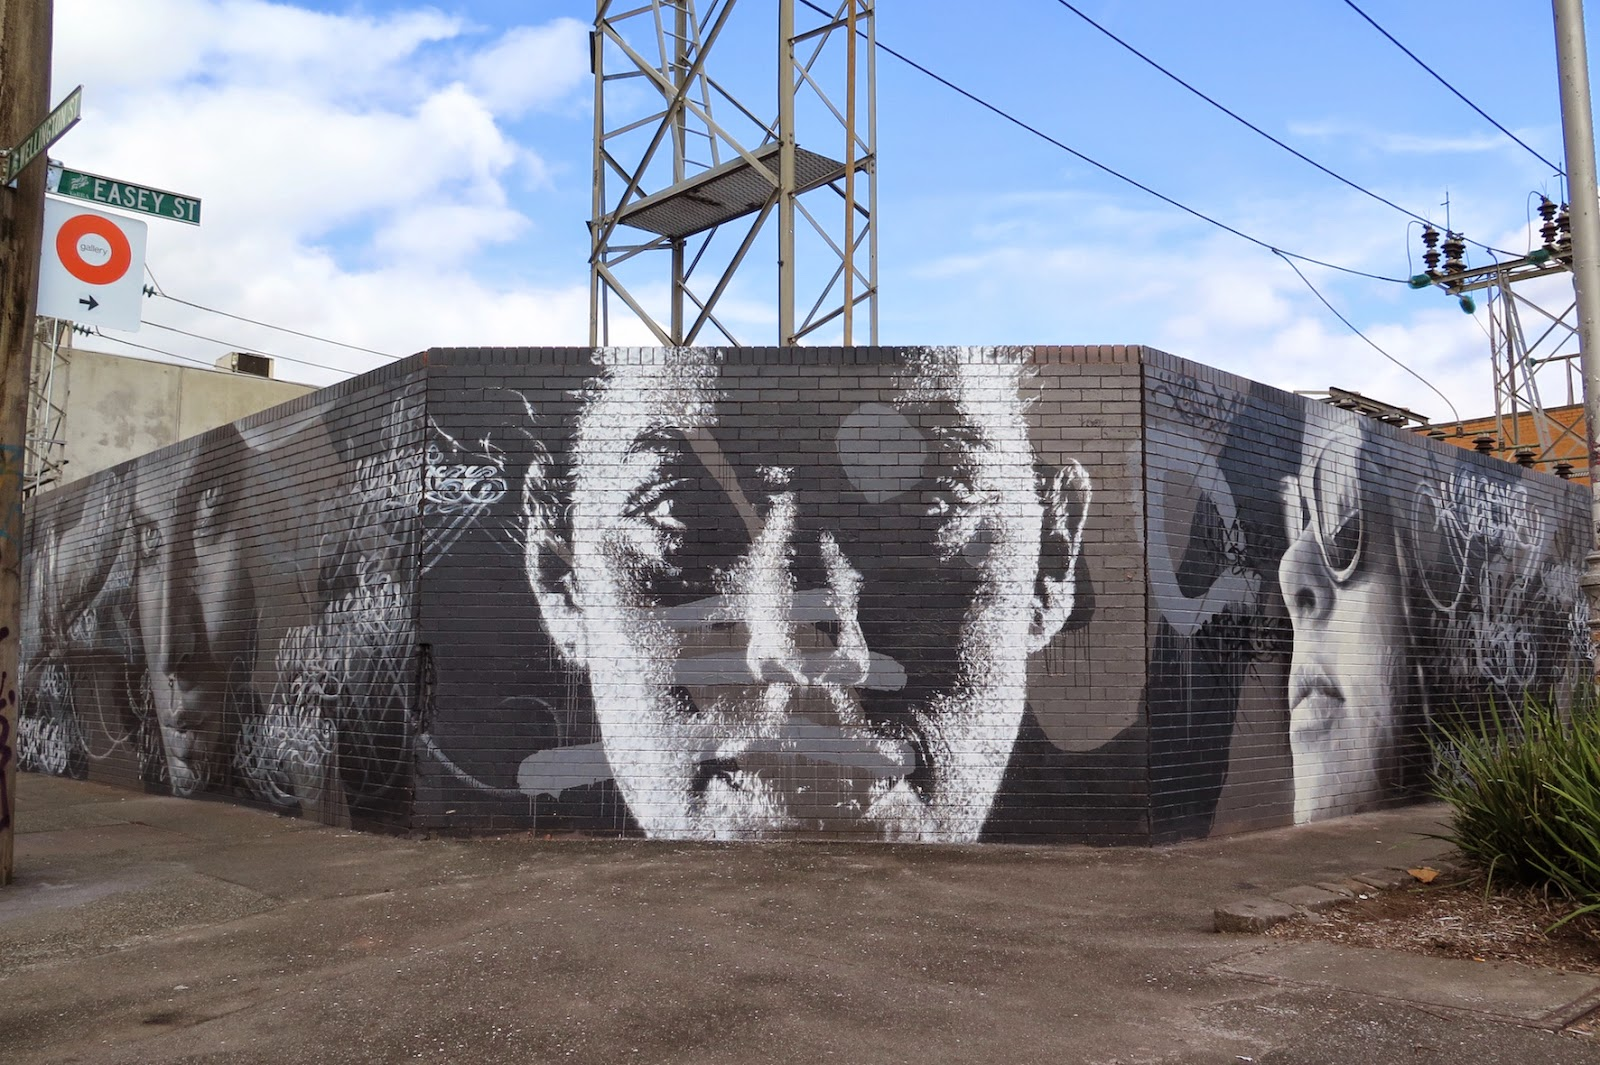 Rone, Adnate, Askew One, Guido Van Helten And Mayonaize came together recently to collaborate on a new project in Melbourne's inner suburb of Collingwood.